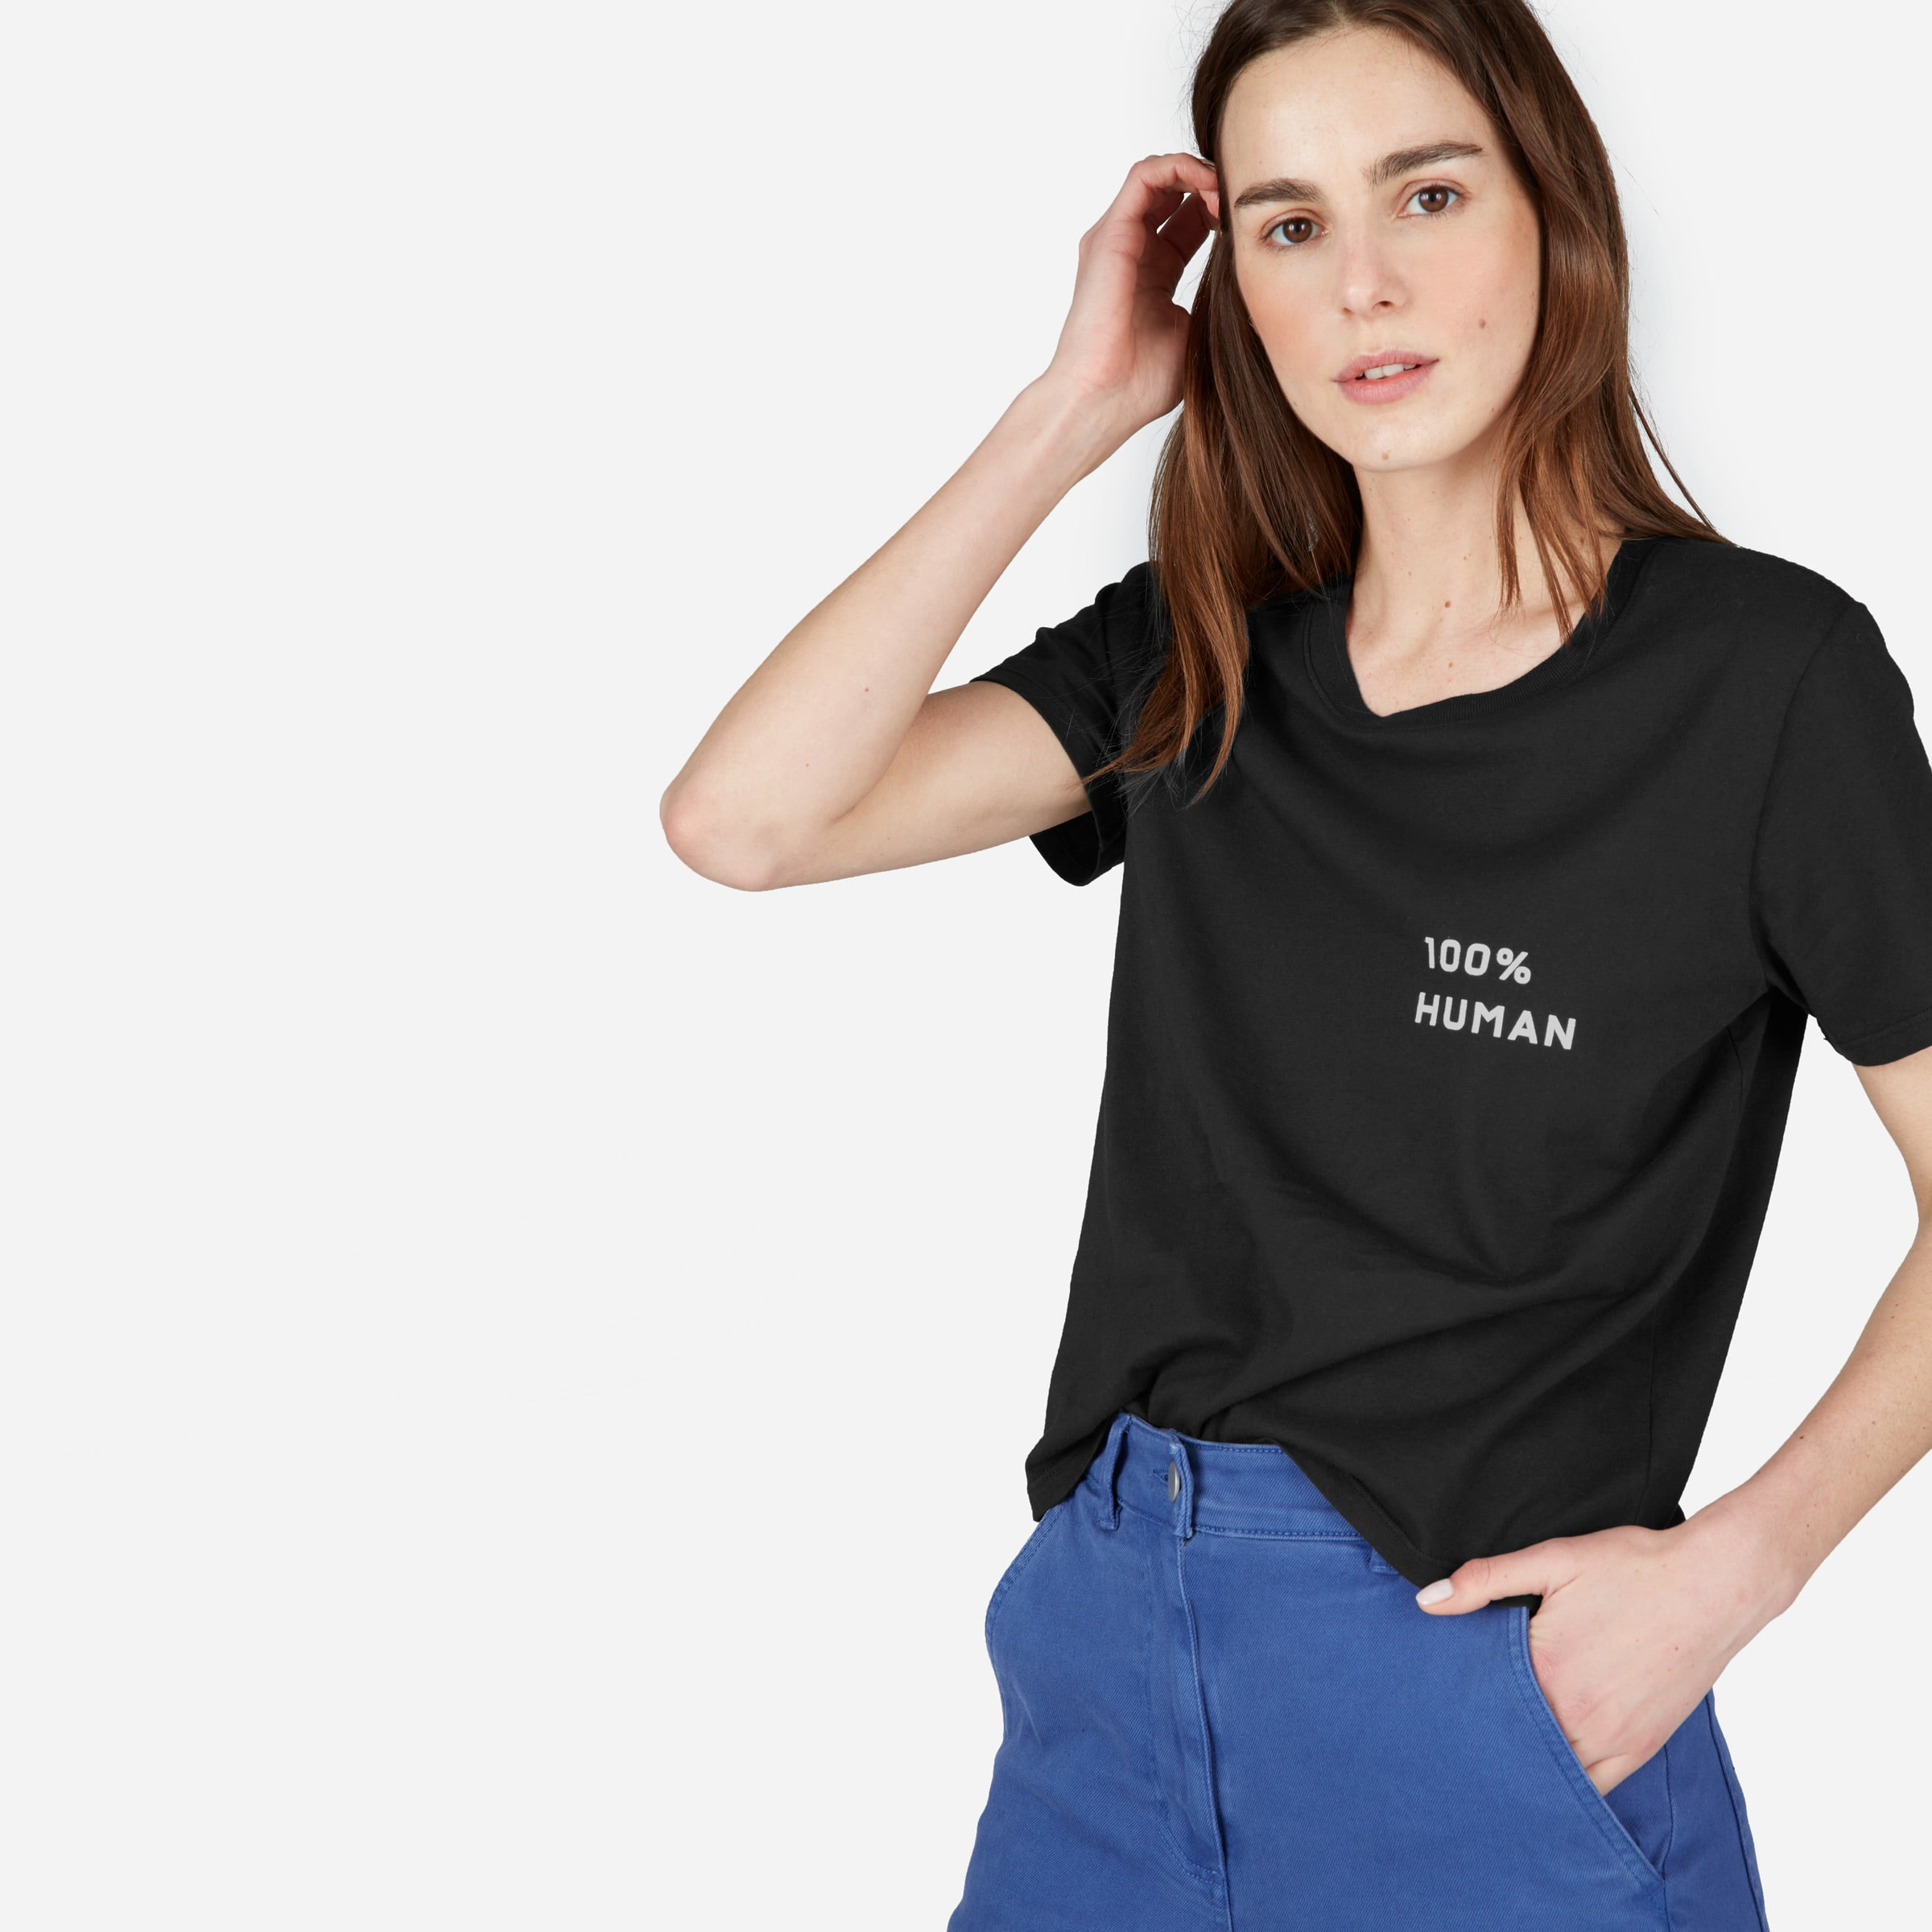 100% Human Graphic Tee from Everlane